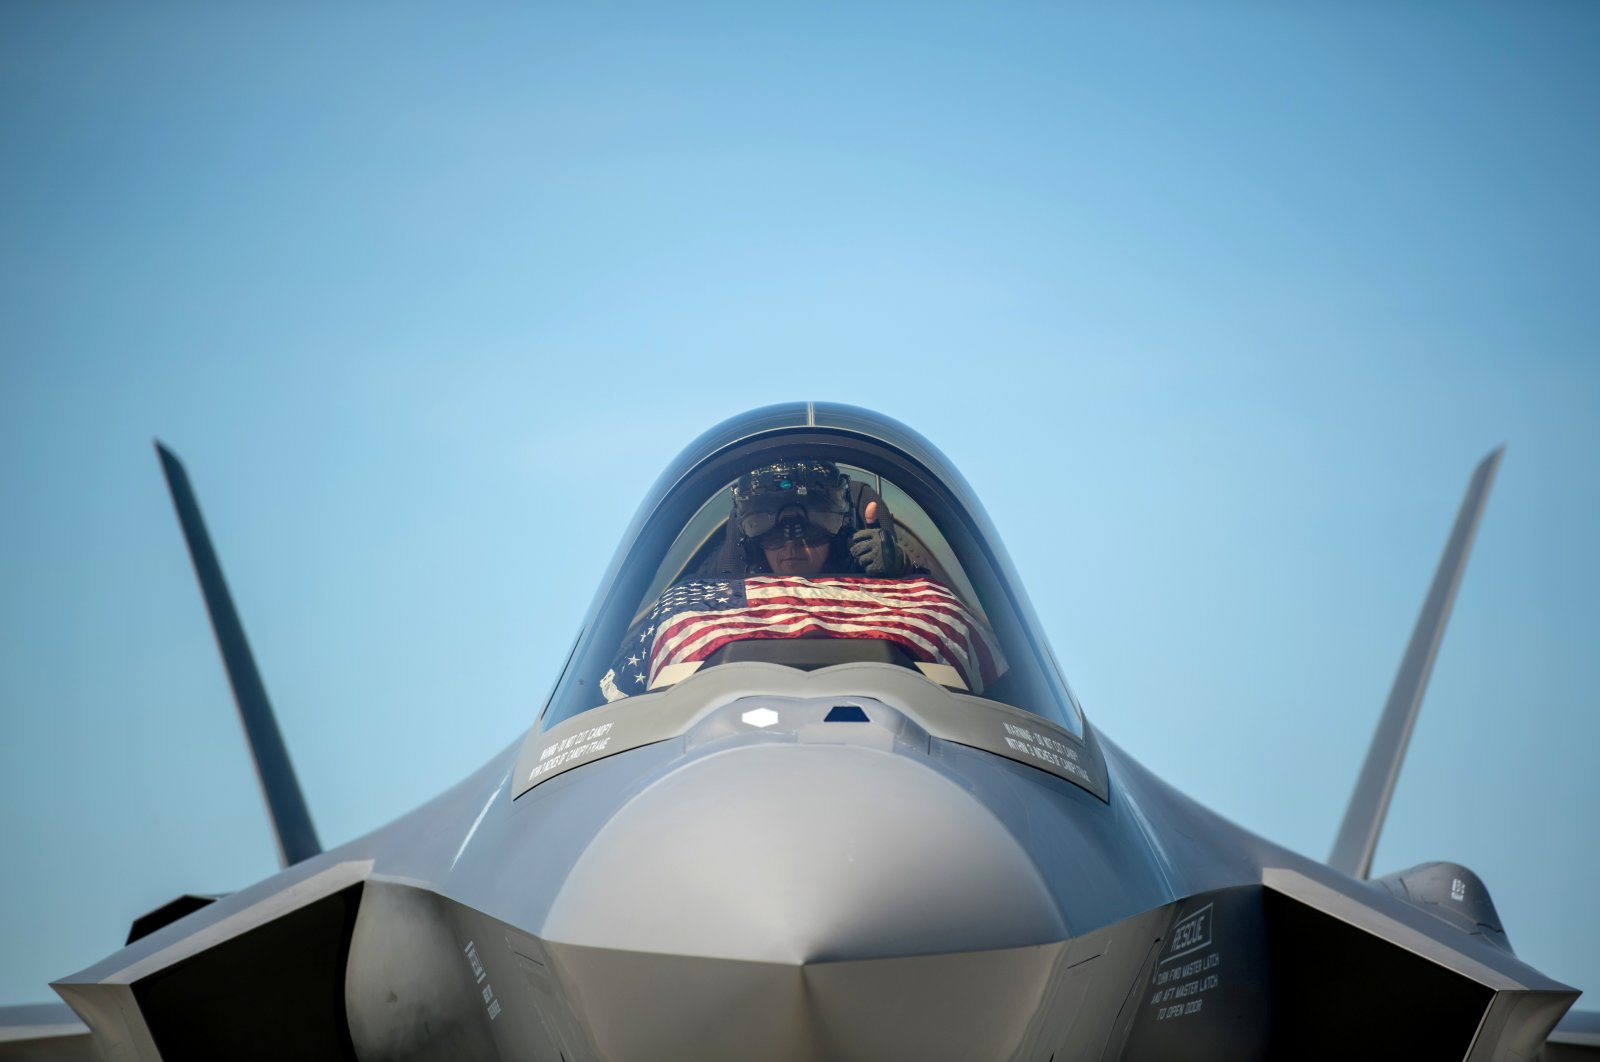 An F-35 pilot prepares for take-off from the Vermont Air National Guard Base with the flag of the United States before a flyover honoring Vermont's front-line coronavirus responders and essential workers in South Burlington, Vermont, the U.S., May 22, 2020. (Reuters)